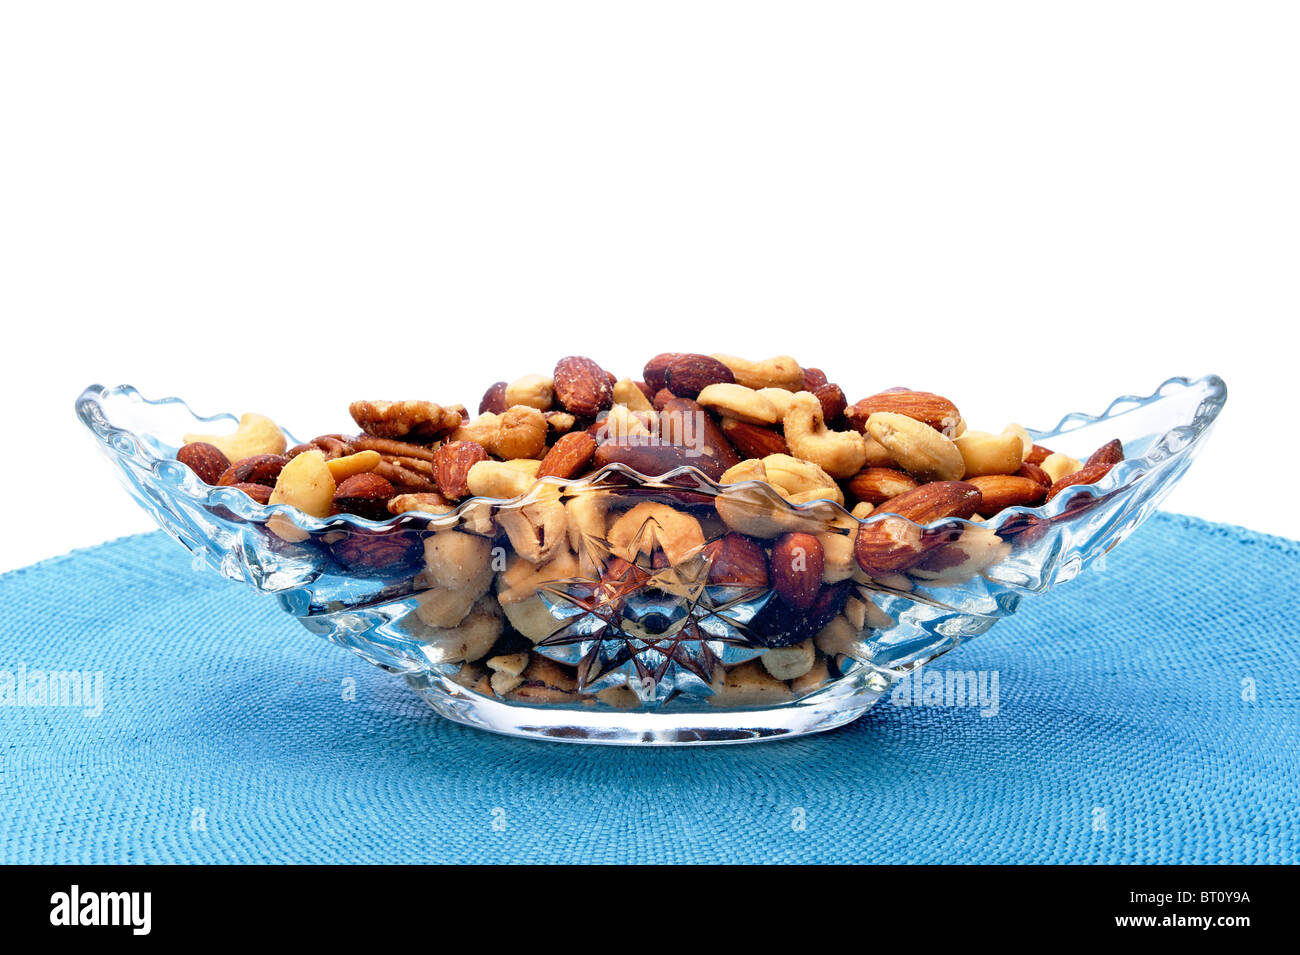 A serving dish full of mixed nuts Stock Photo